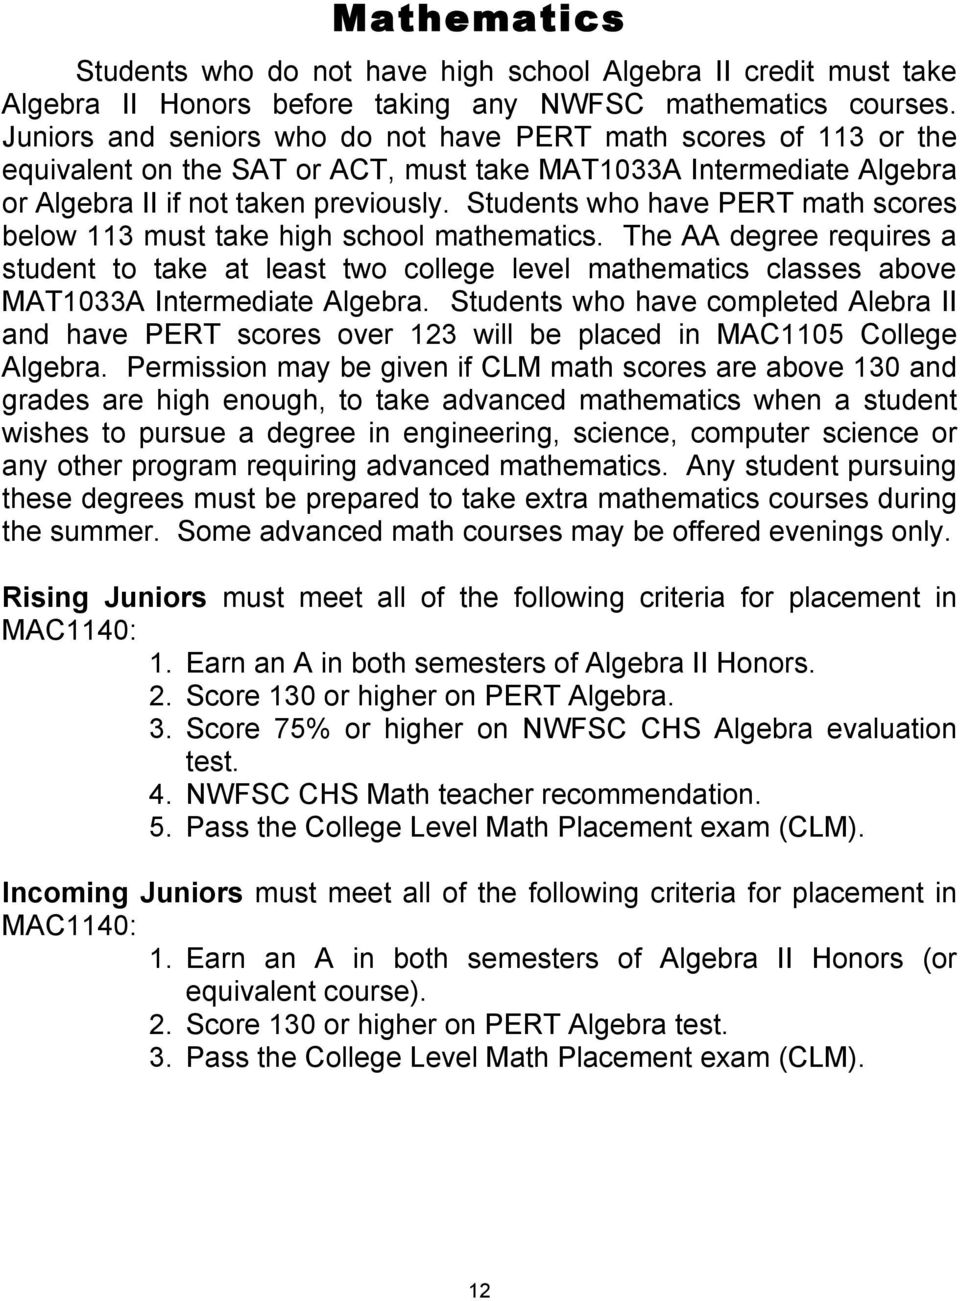 Students who have PERT math scores below 113 must take high school mathematics.